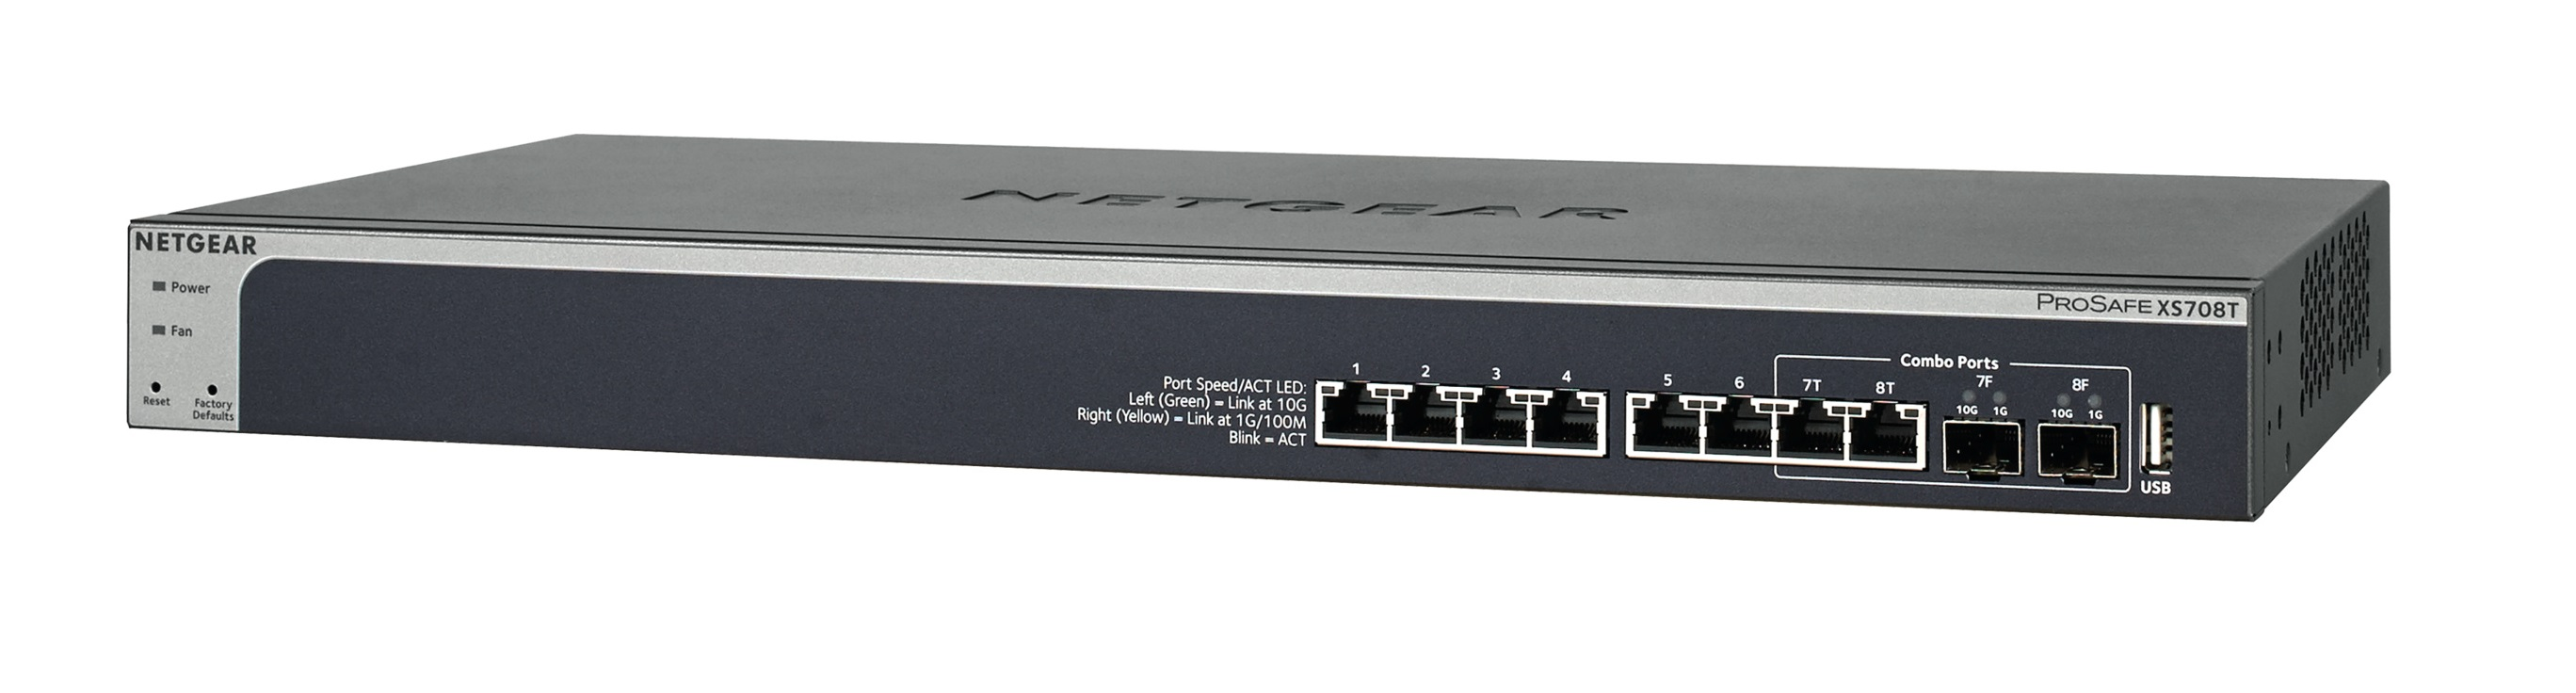 NETGEAR 8PT 10G SMART MANAGED SWITCH